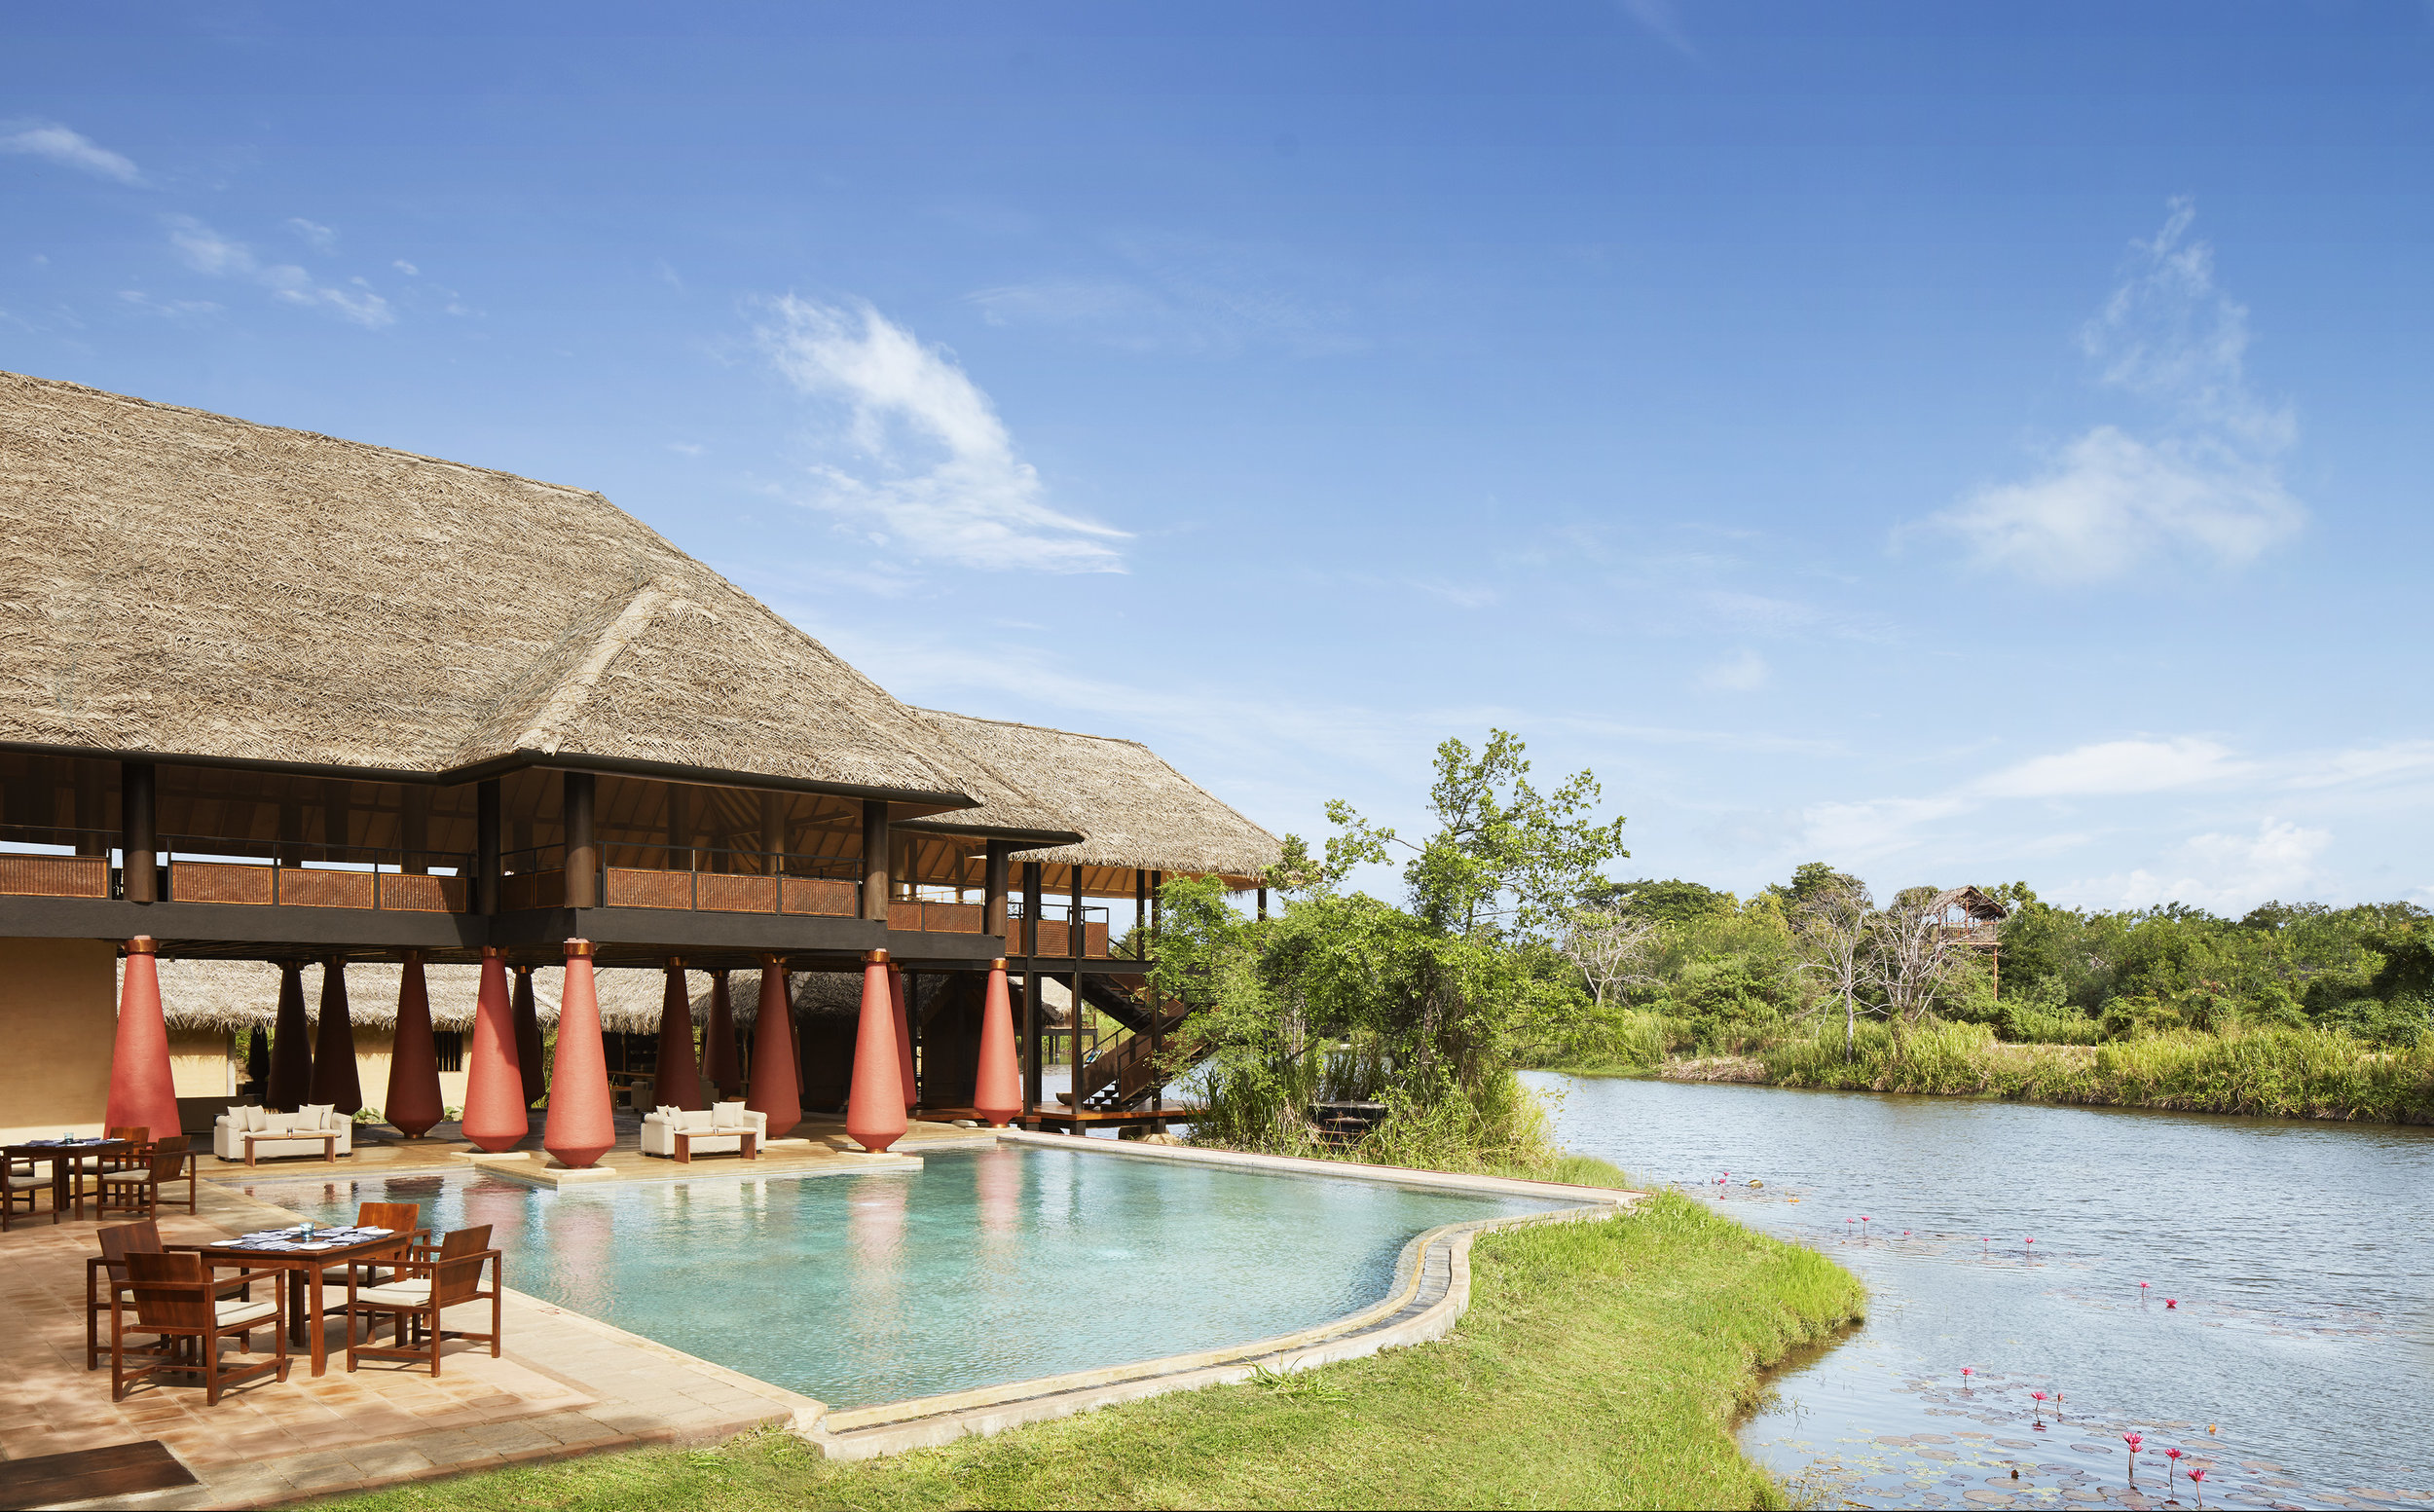 invite-to-paradise-sri-lanka-specialists-experts-travel-agent-tour-operator-jetwing-viluyana-hotel-cultural-triangle-exterior-3-day.jpg